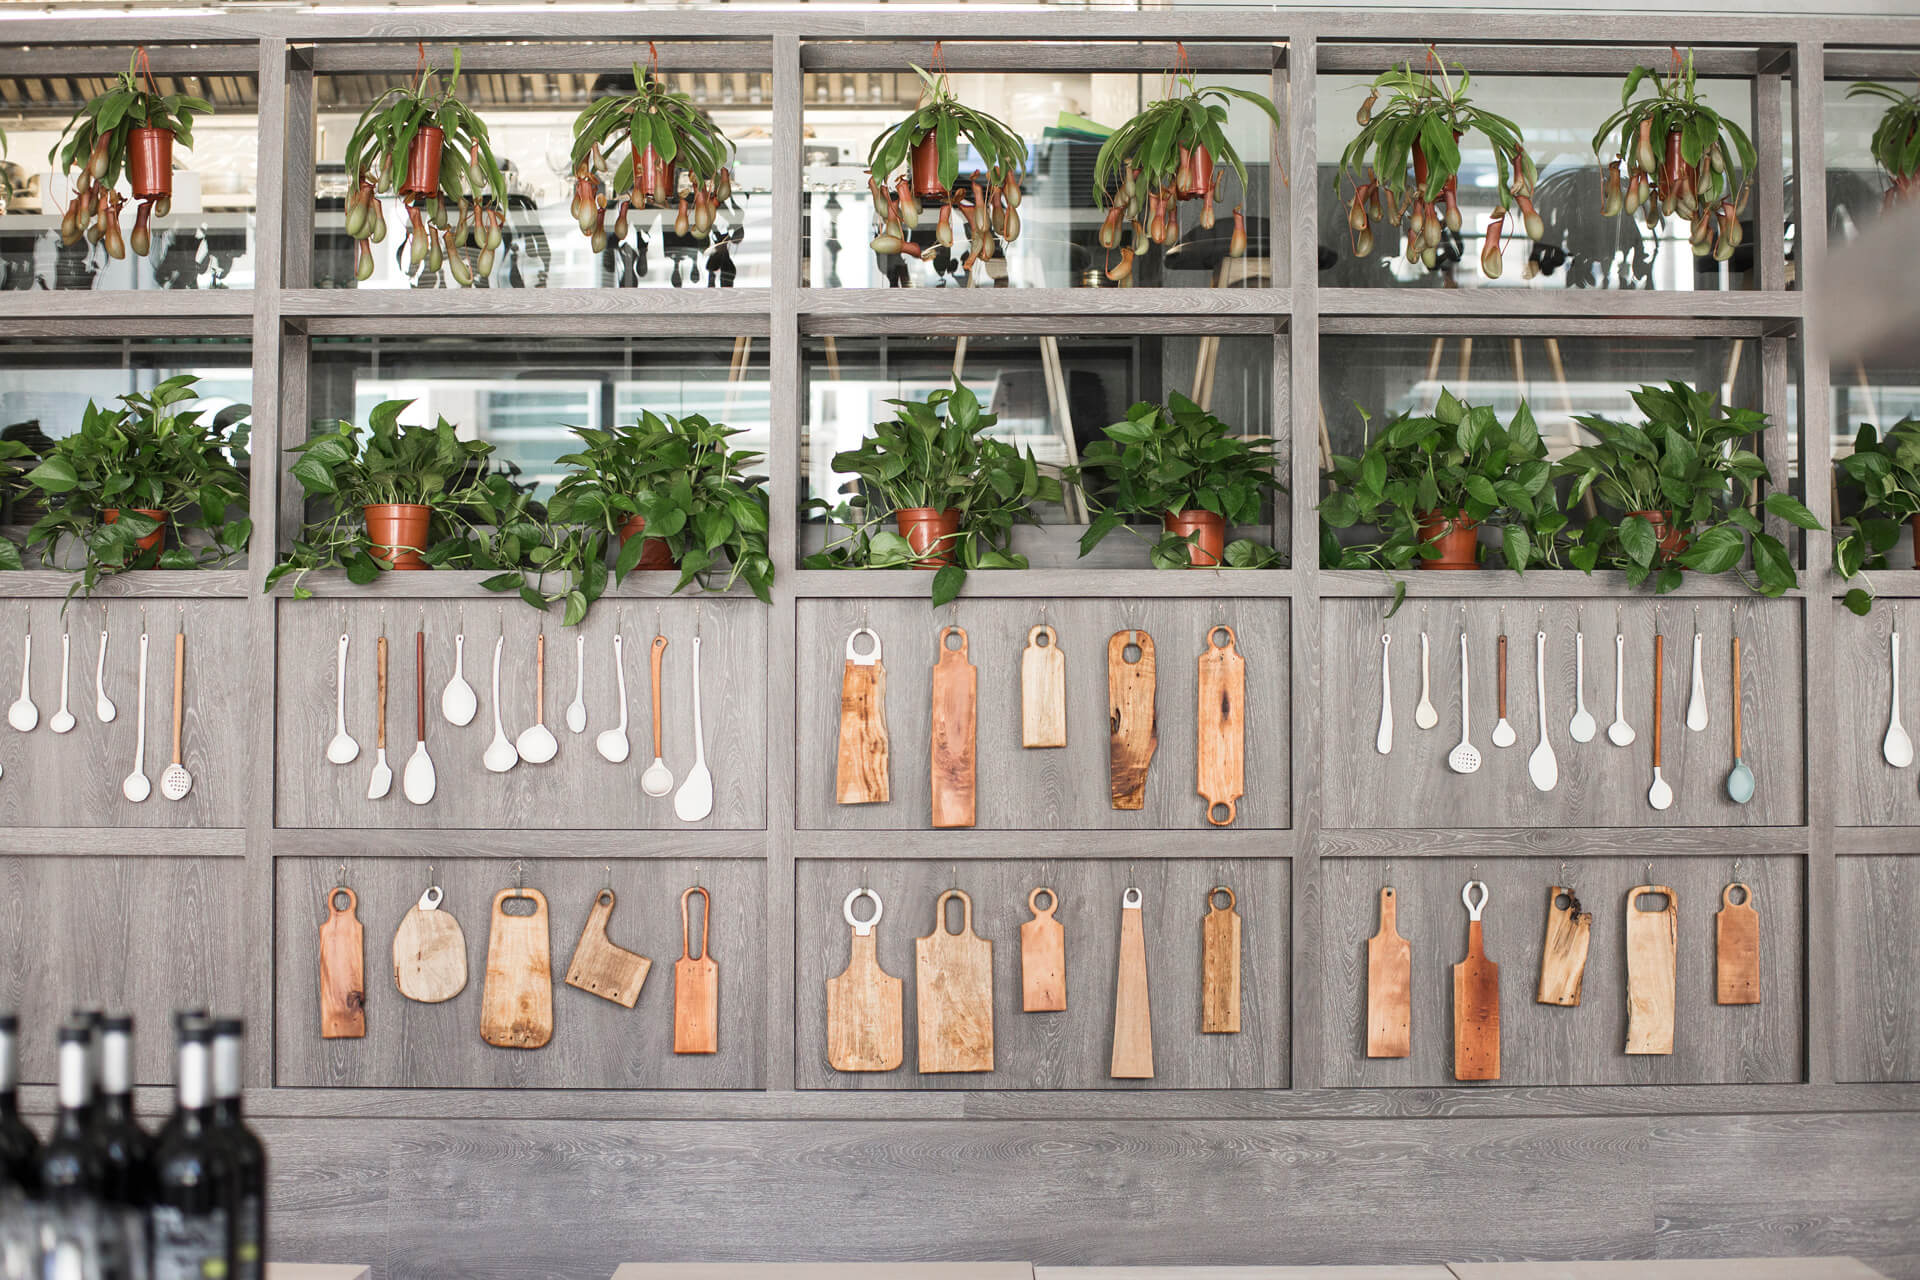 wooden utensils hanging on wall, plants